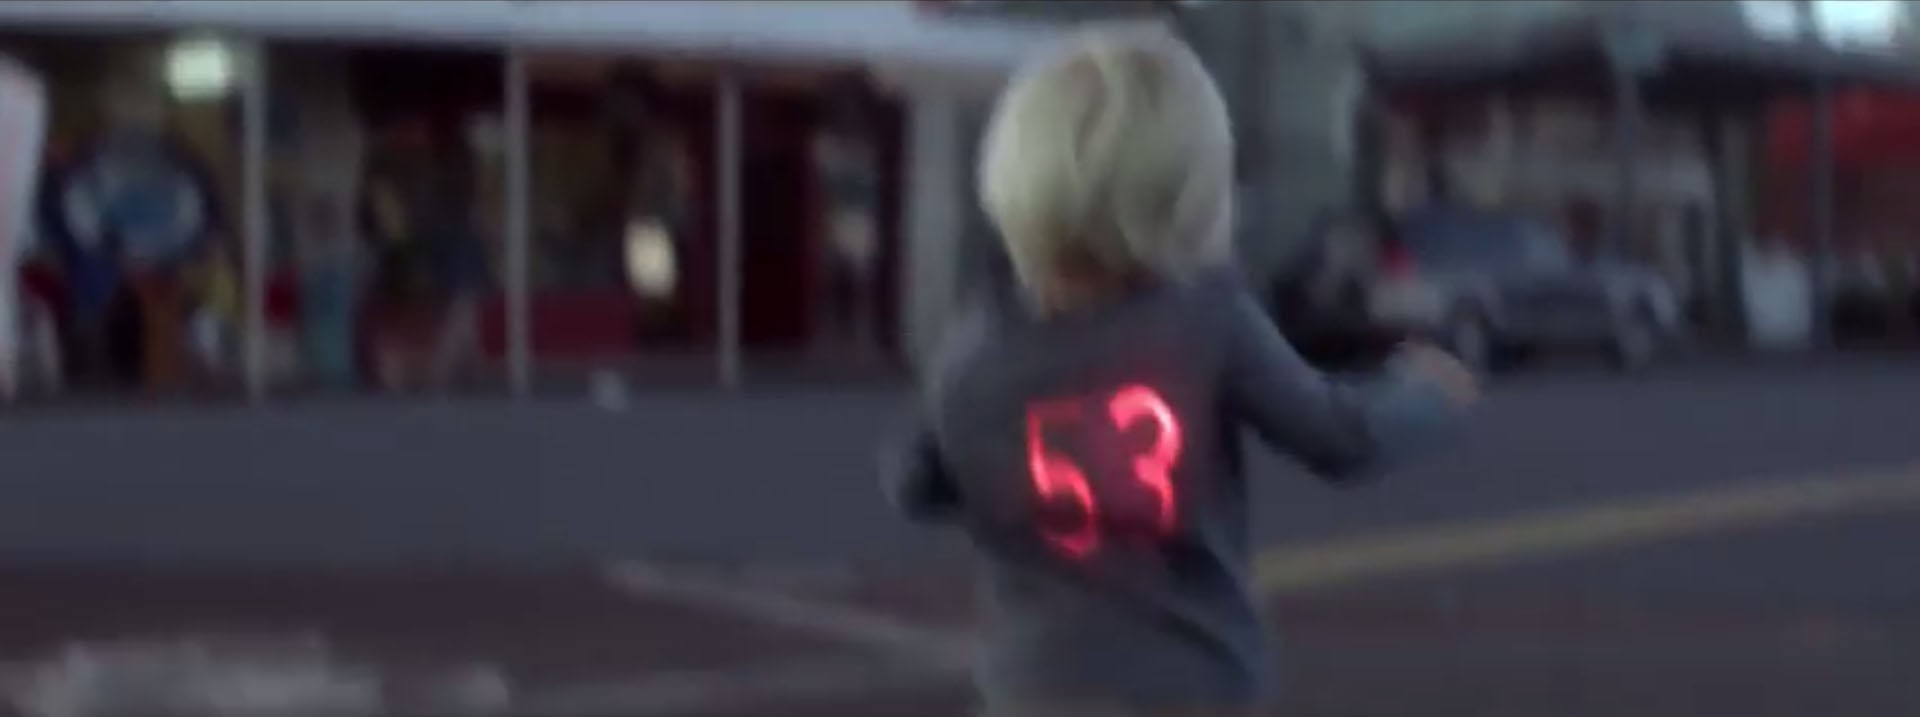 Car Transport Reviews >> New Zealand Anti-Speeding Campaign Shows How Your Speed ...